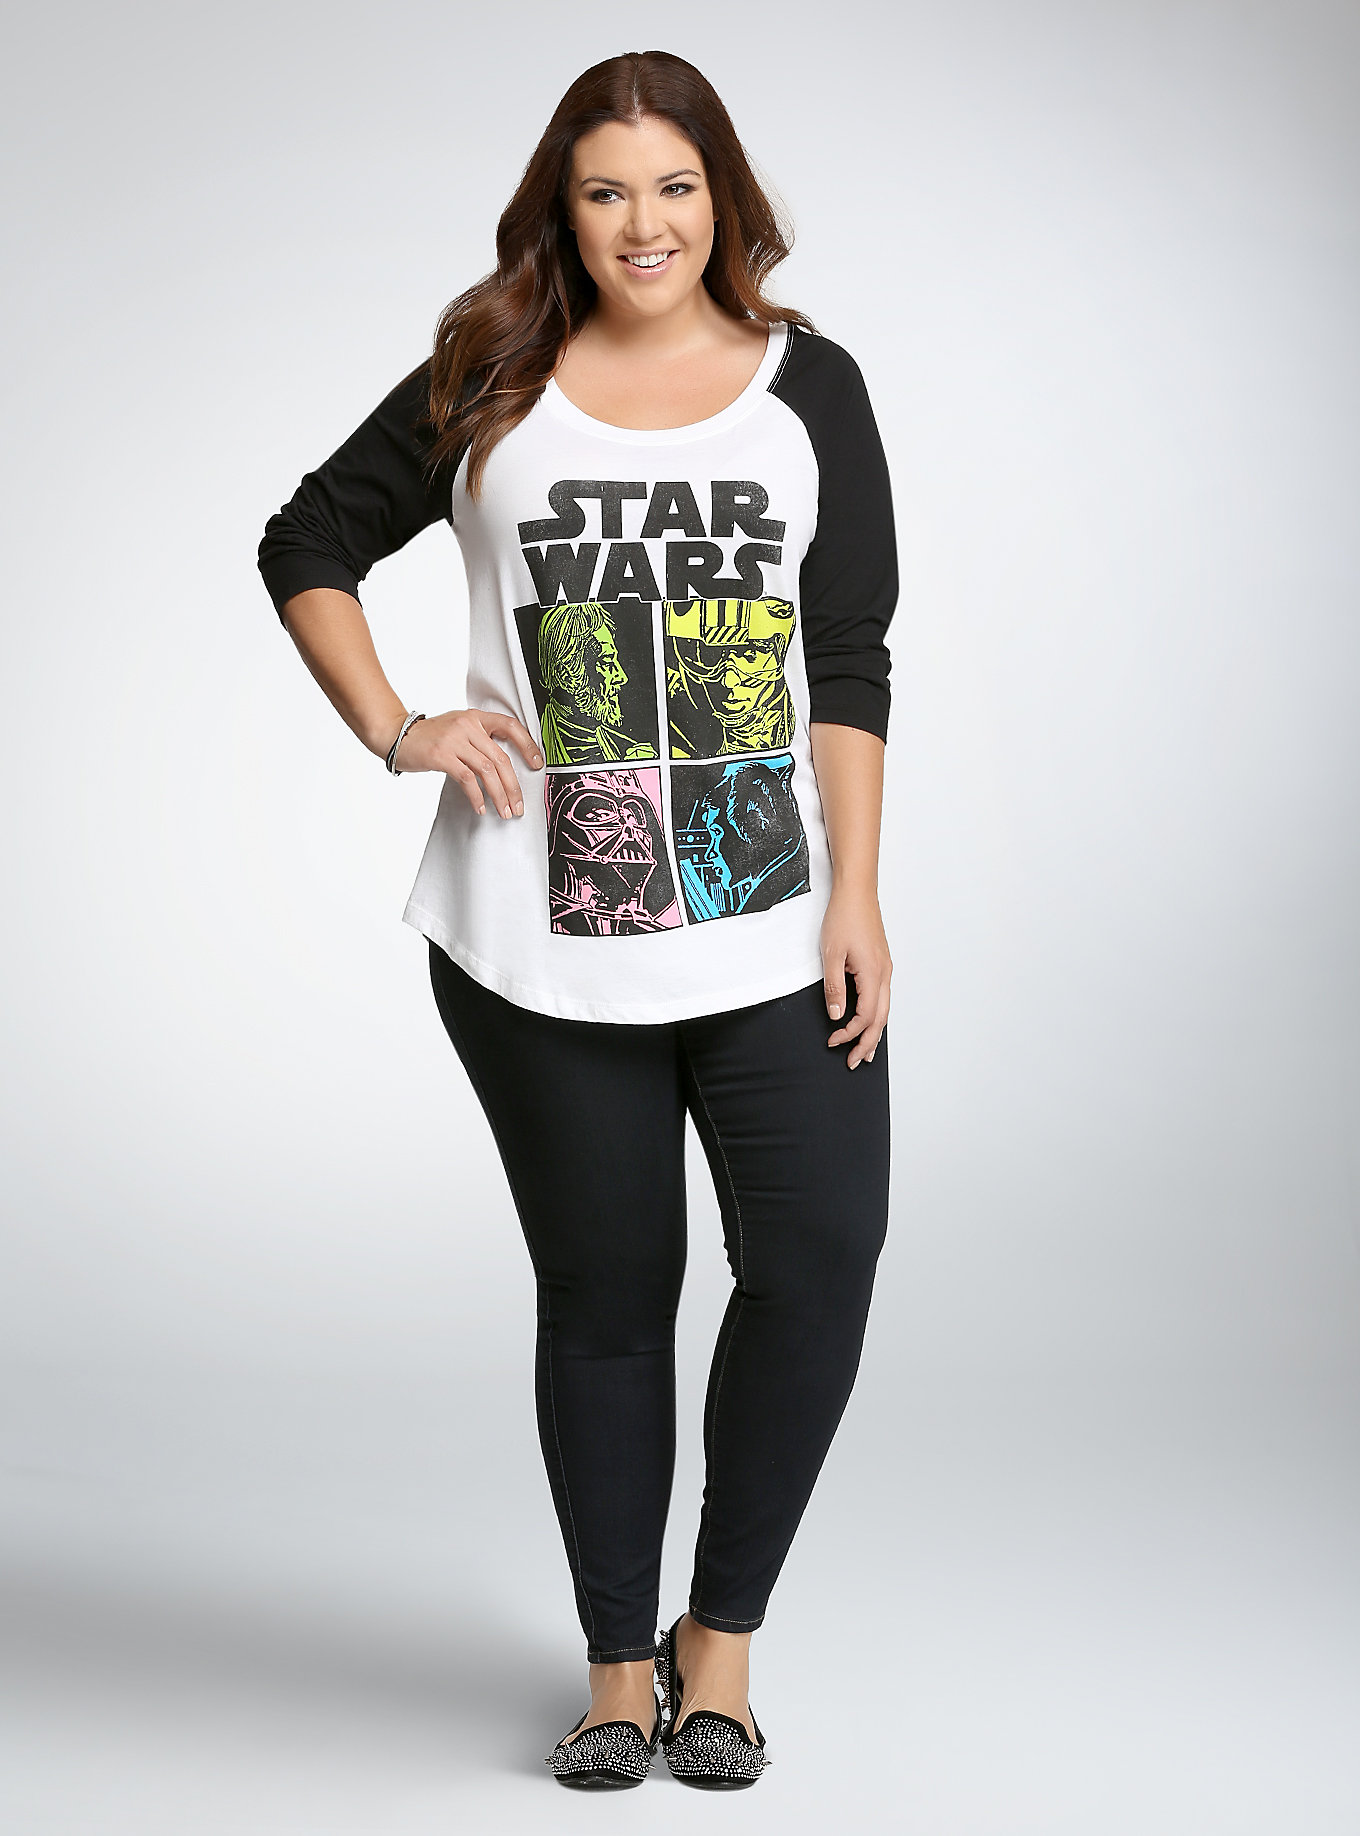 New raglan top at Torrid - The Kessel Runway